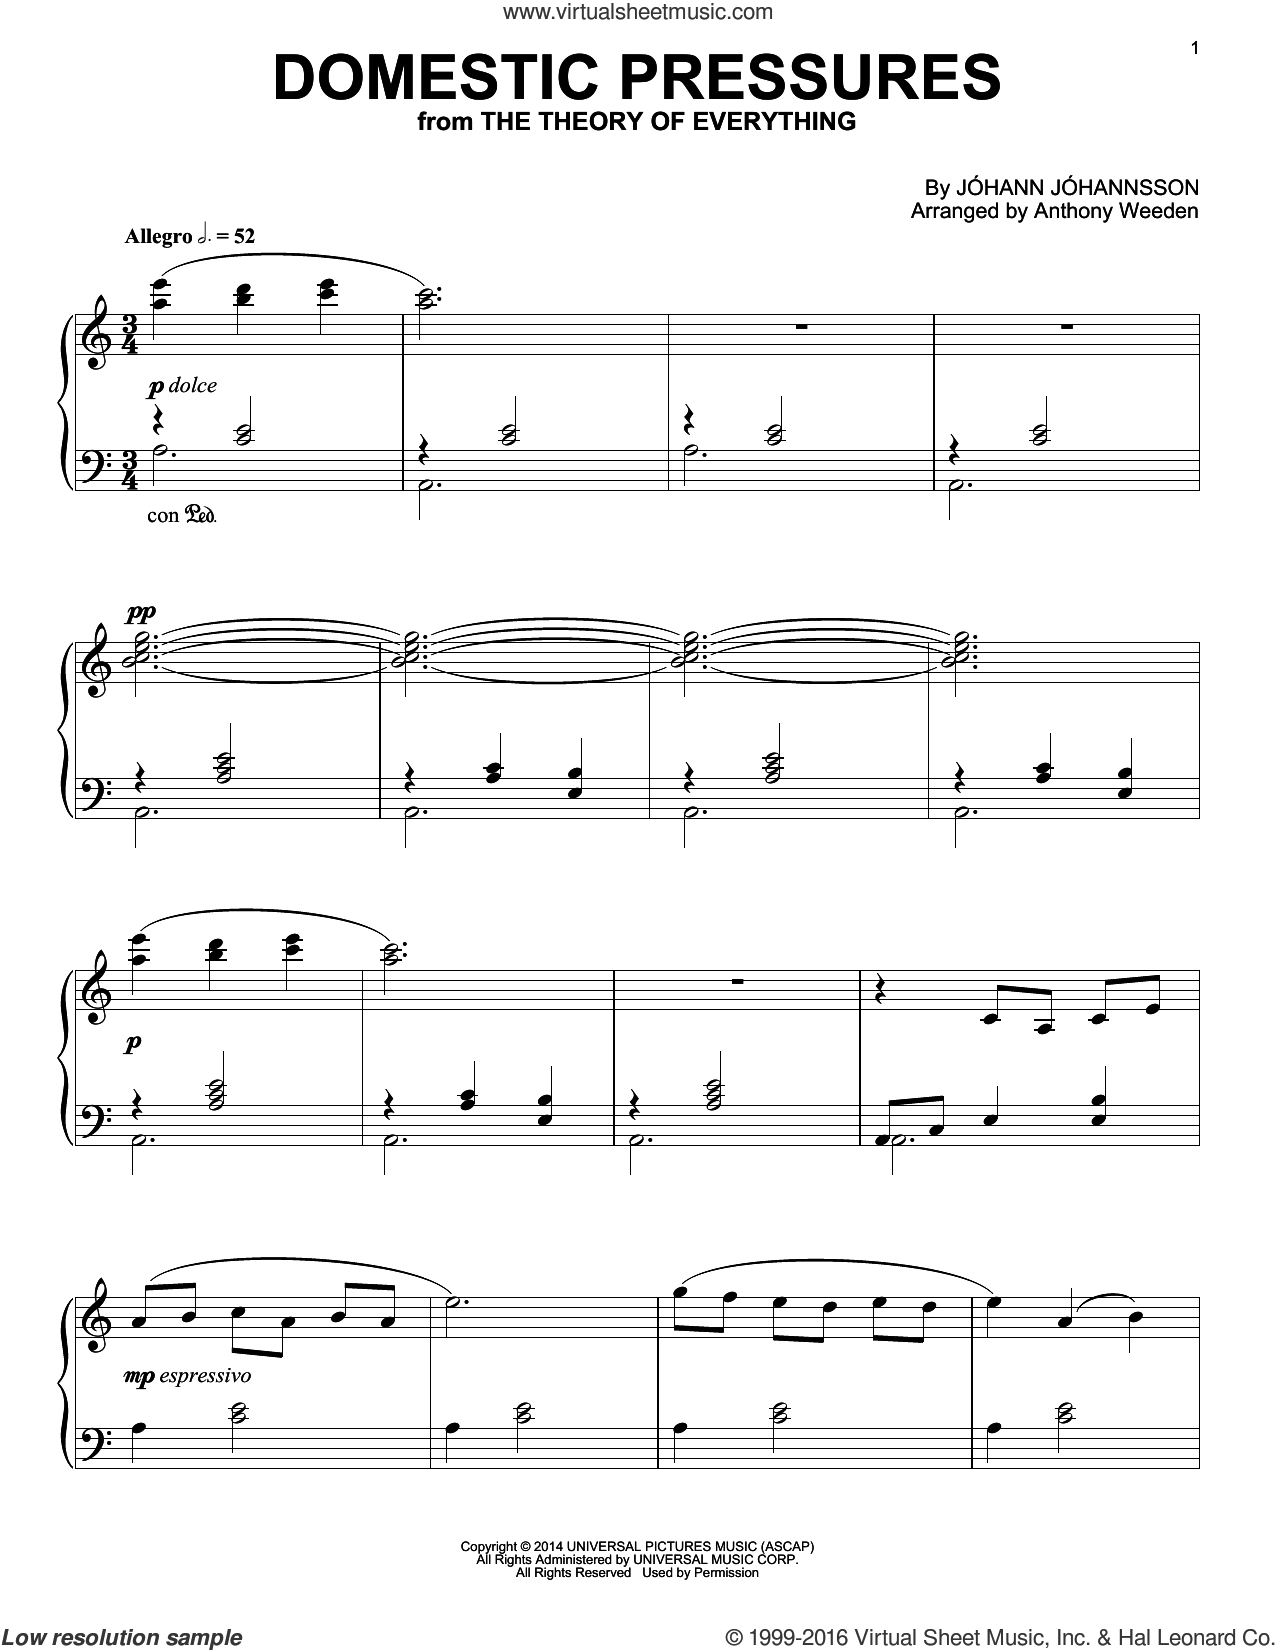 Domestic Pressures sheet music for piano solo by Johann Johannsson, intermediate. Score Image Preview.